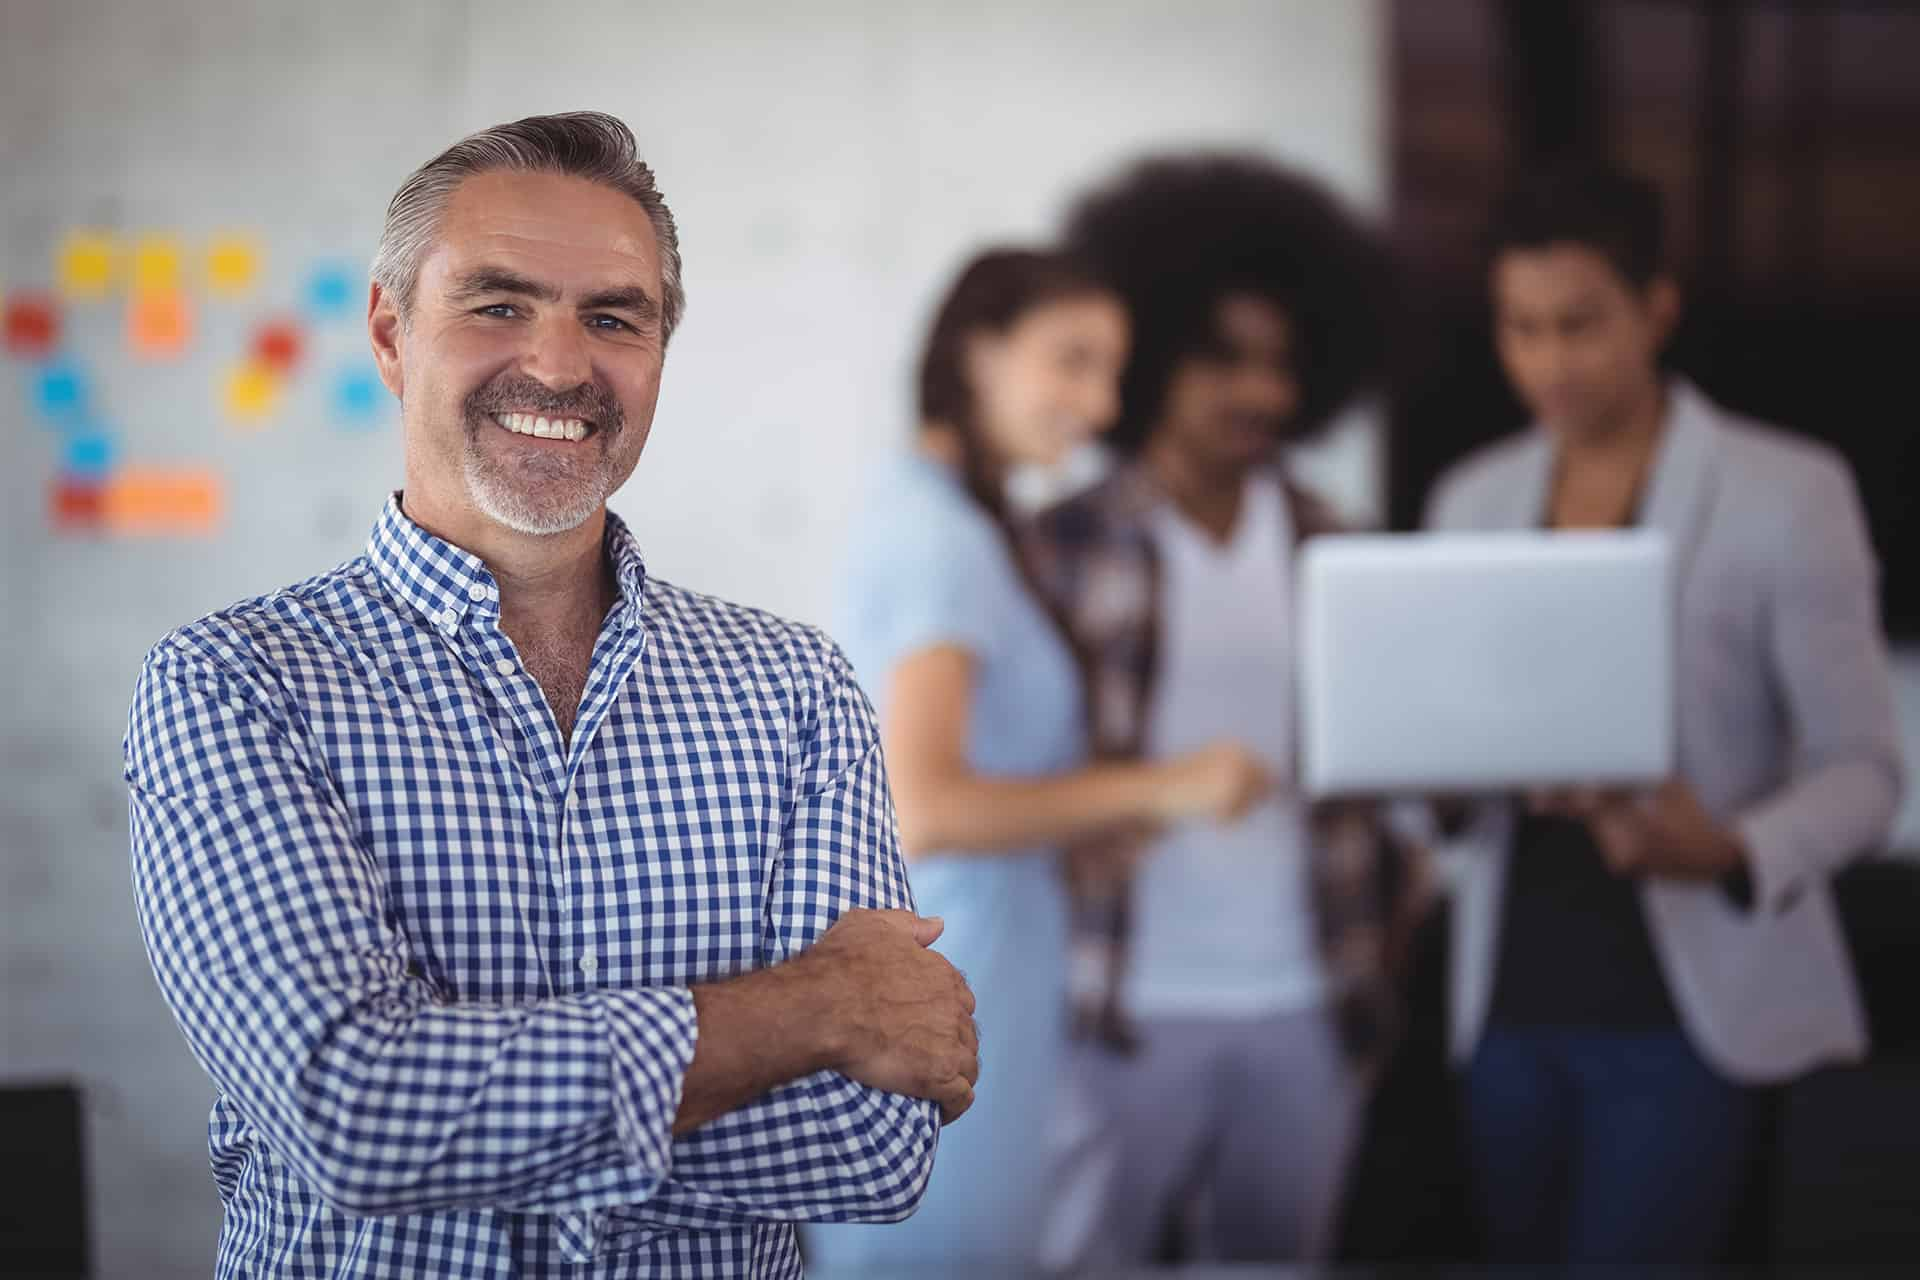 benefits of case studies portrait of smiling businessman with team feature image